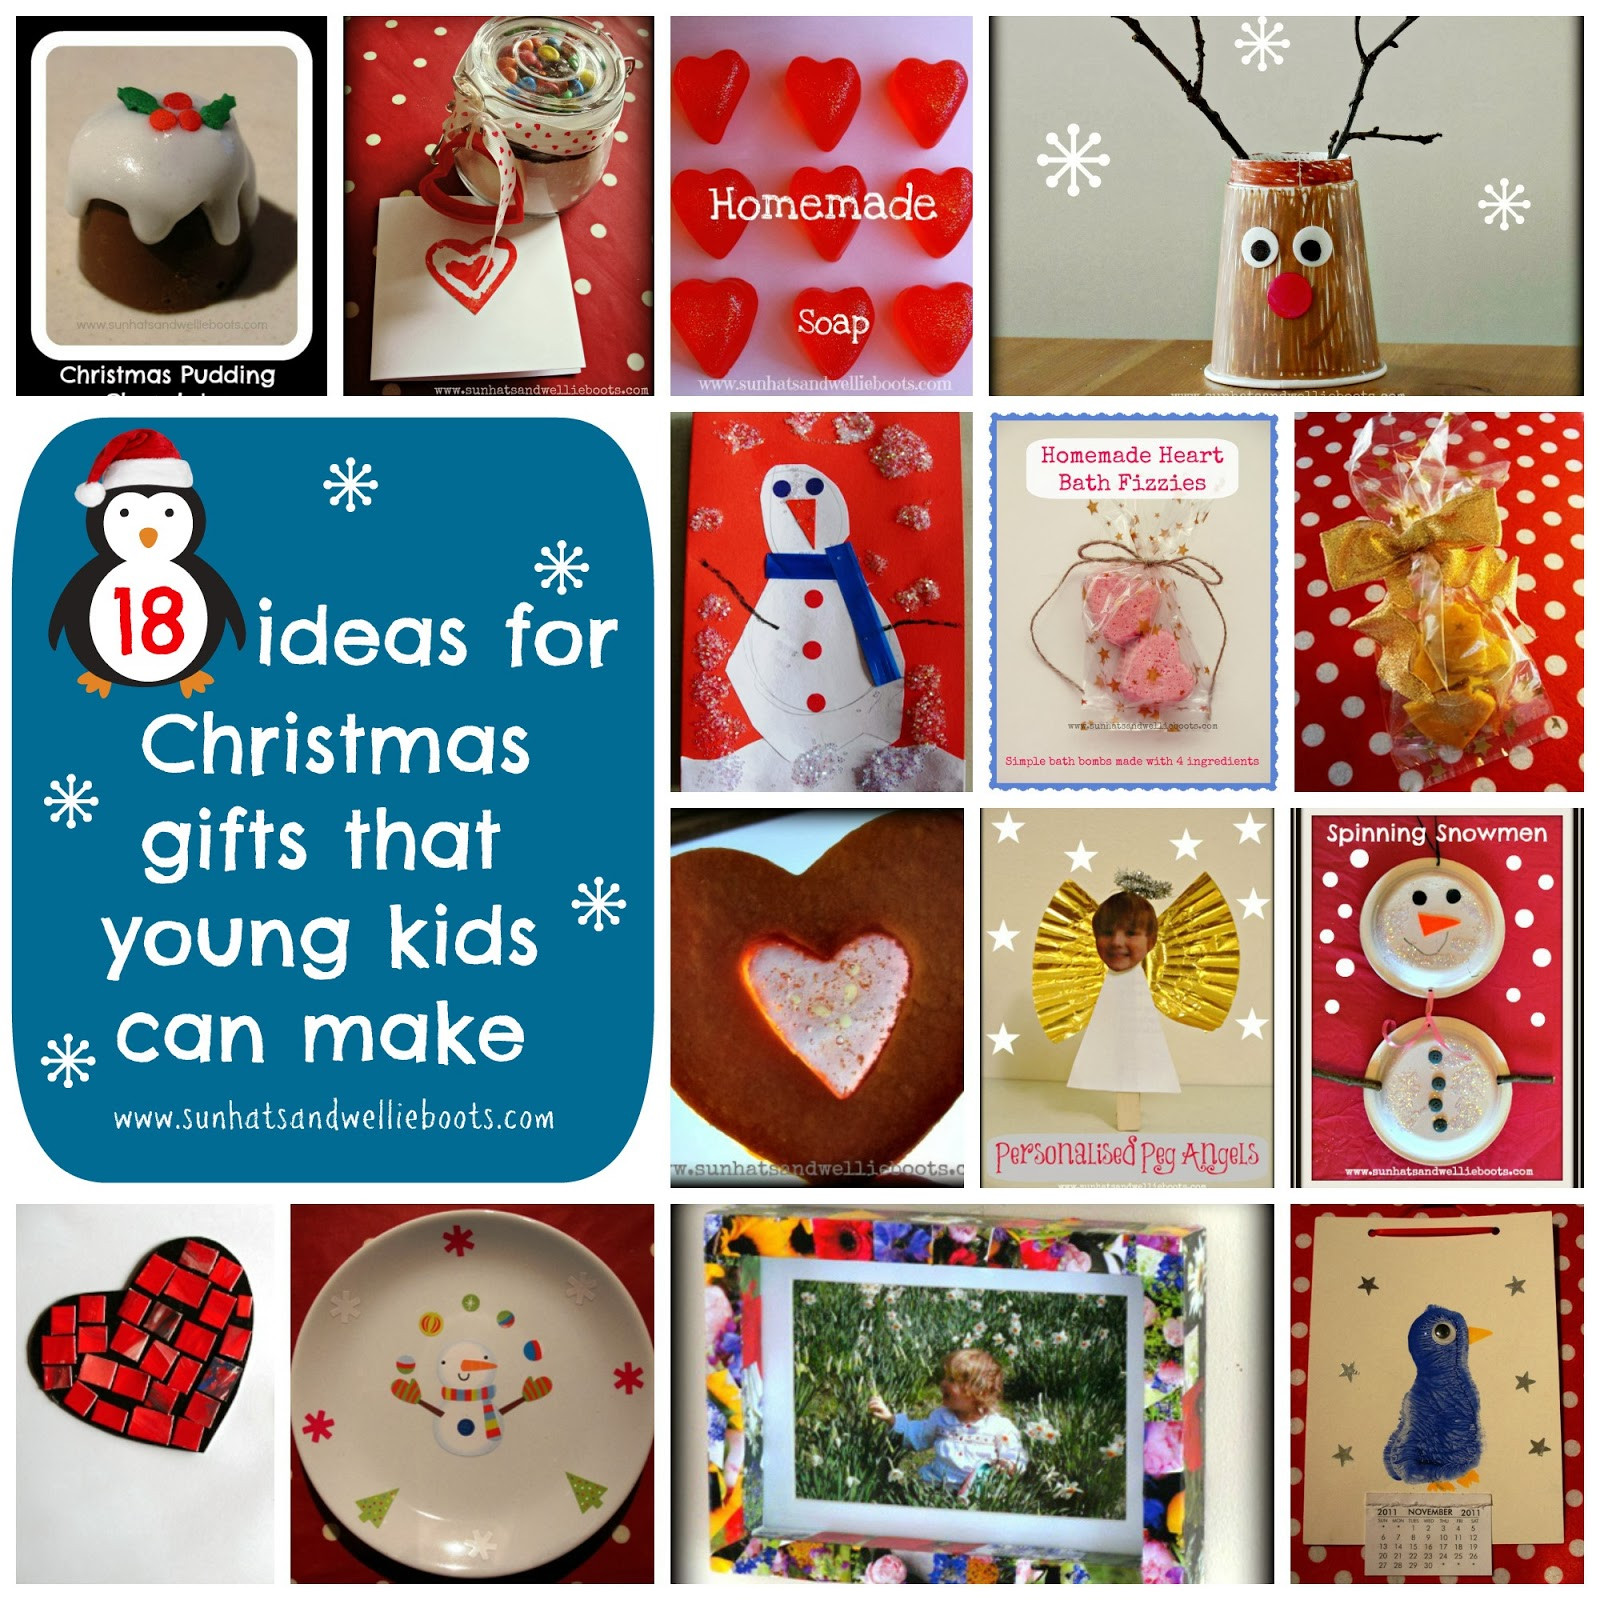 Best ideas about Holiday Gift Ideas For Kids . Save or Pin Sun Hats & Wellie Boots 18 Homemade Christmas Gifts That Now.